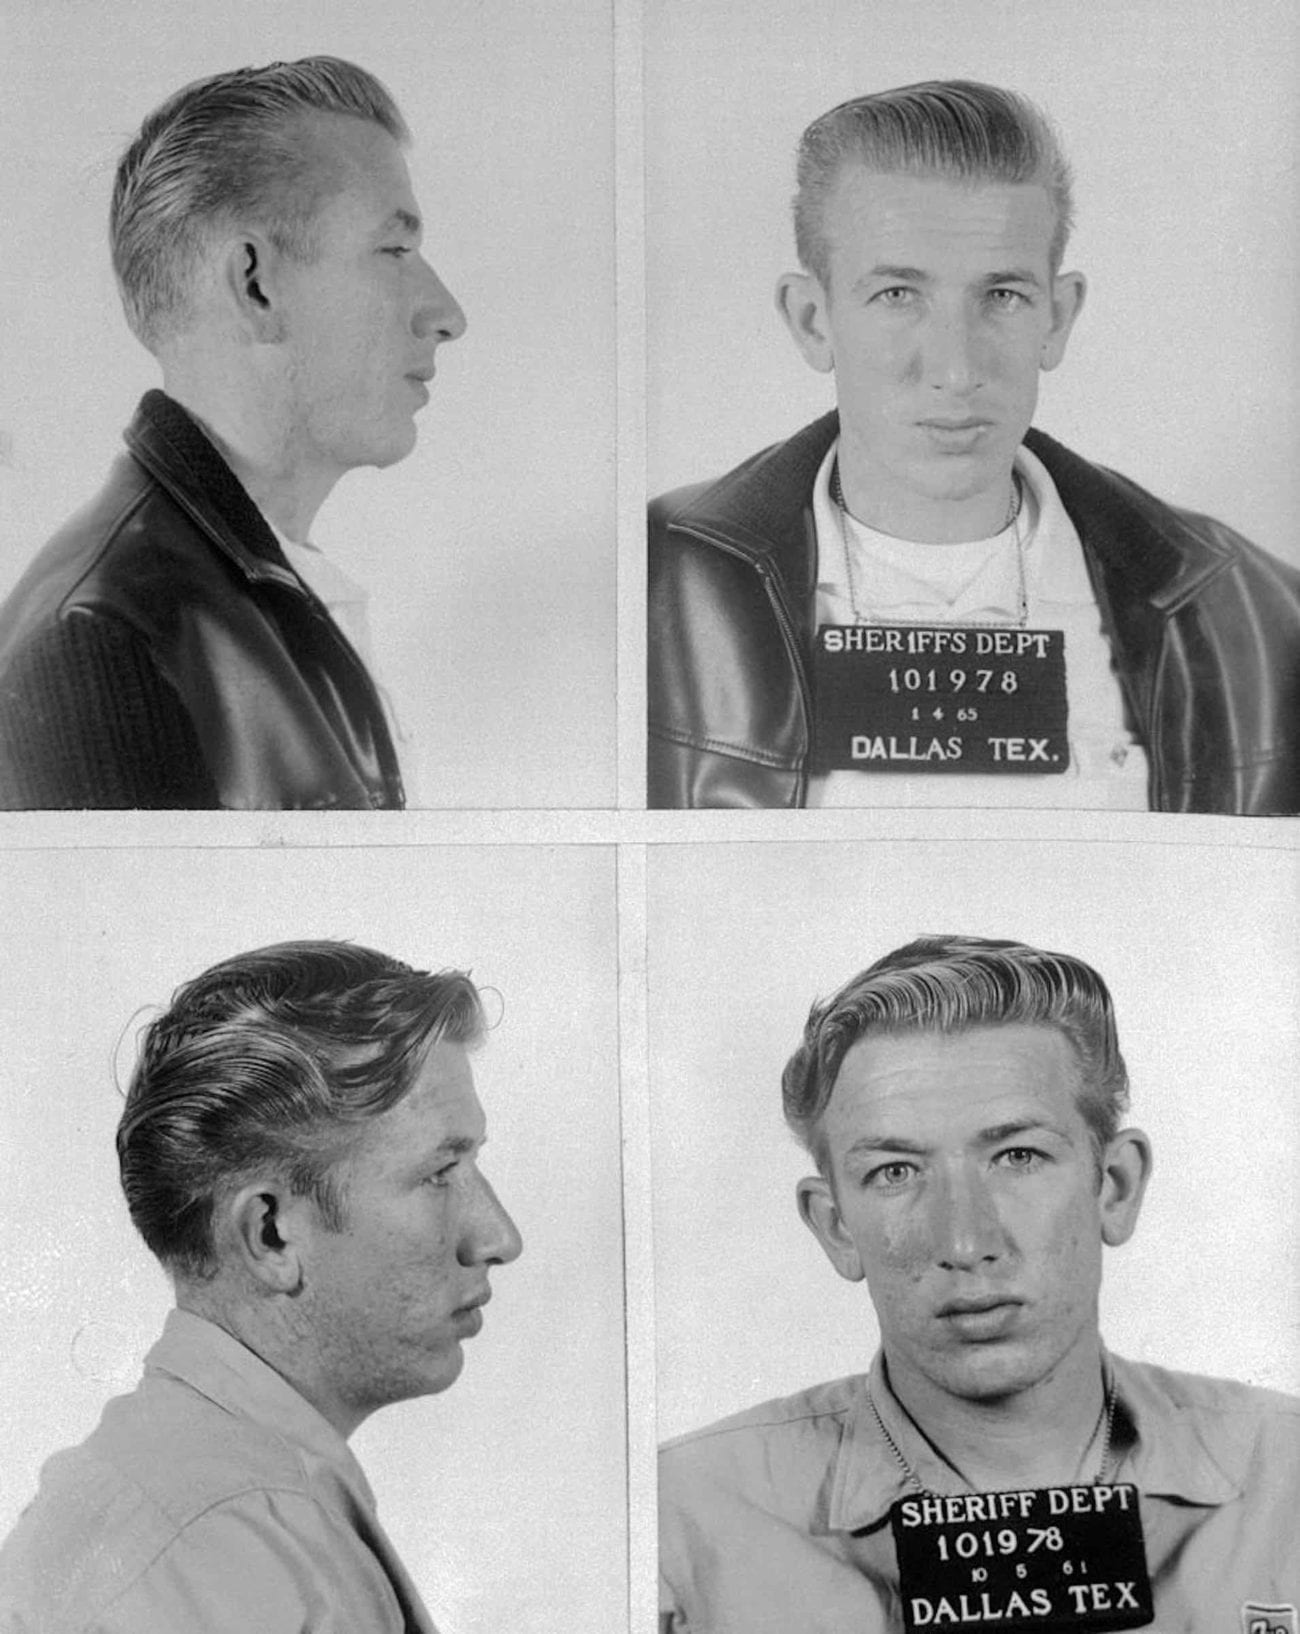 Richard Speck has never been kind to the female gender. Here's everything we know about mass murderer and enemy of women, Richard Speck.